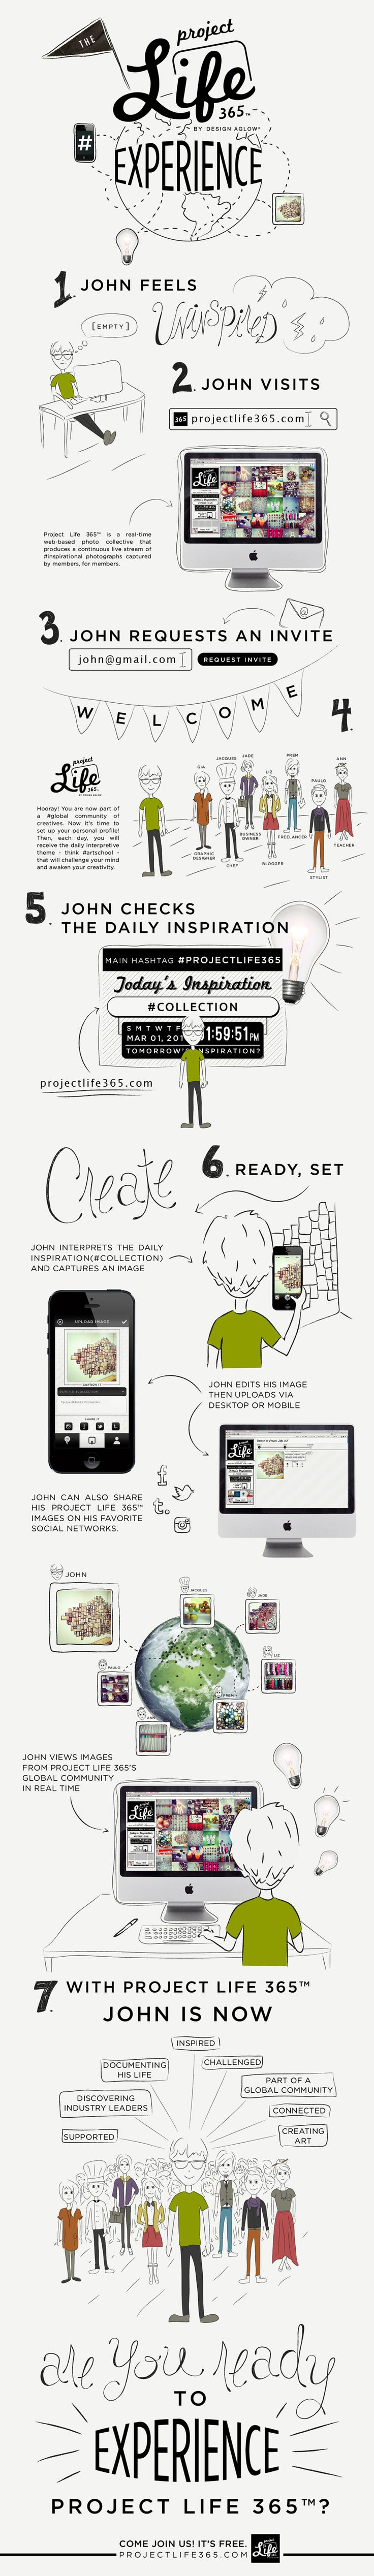 That's right, John's back with an updated and super easy step-by-step infographic. Go on, take a peak!